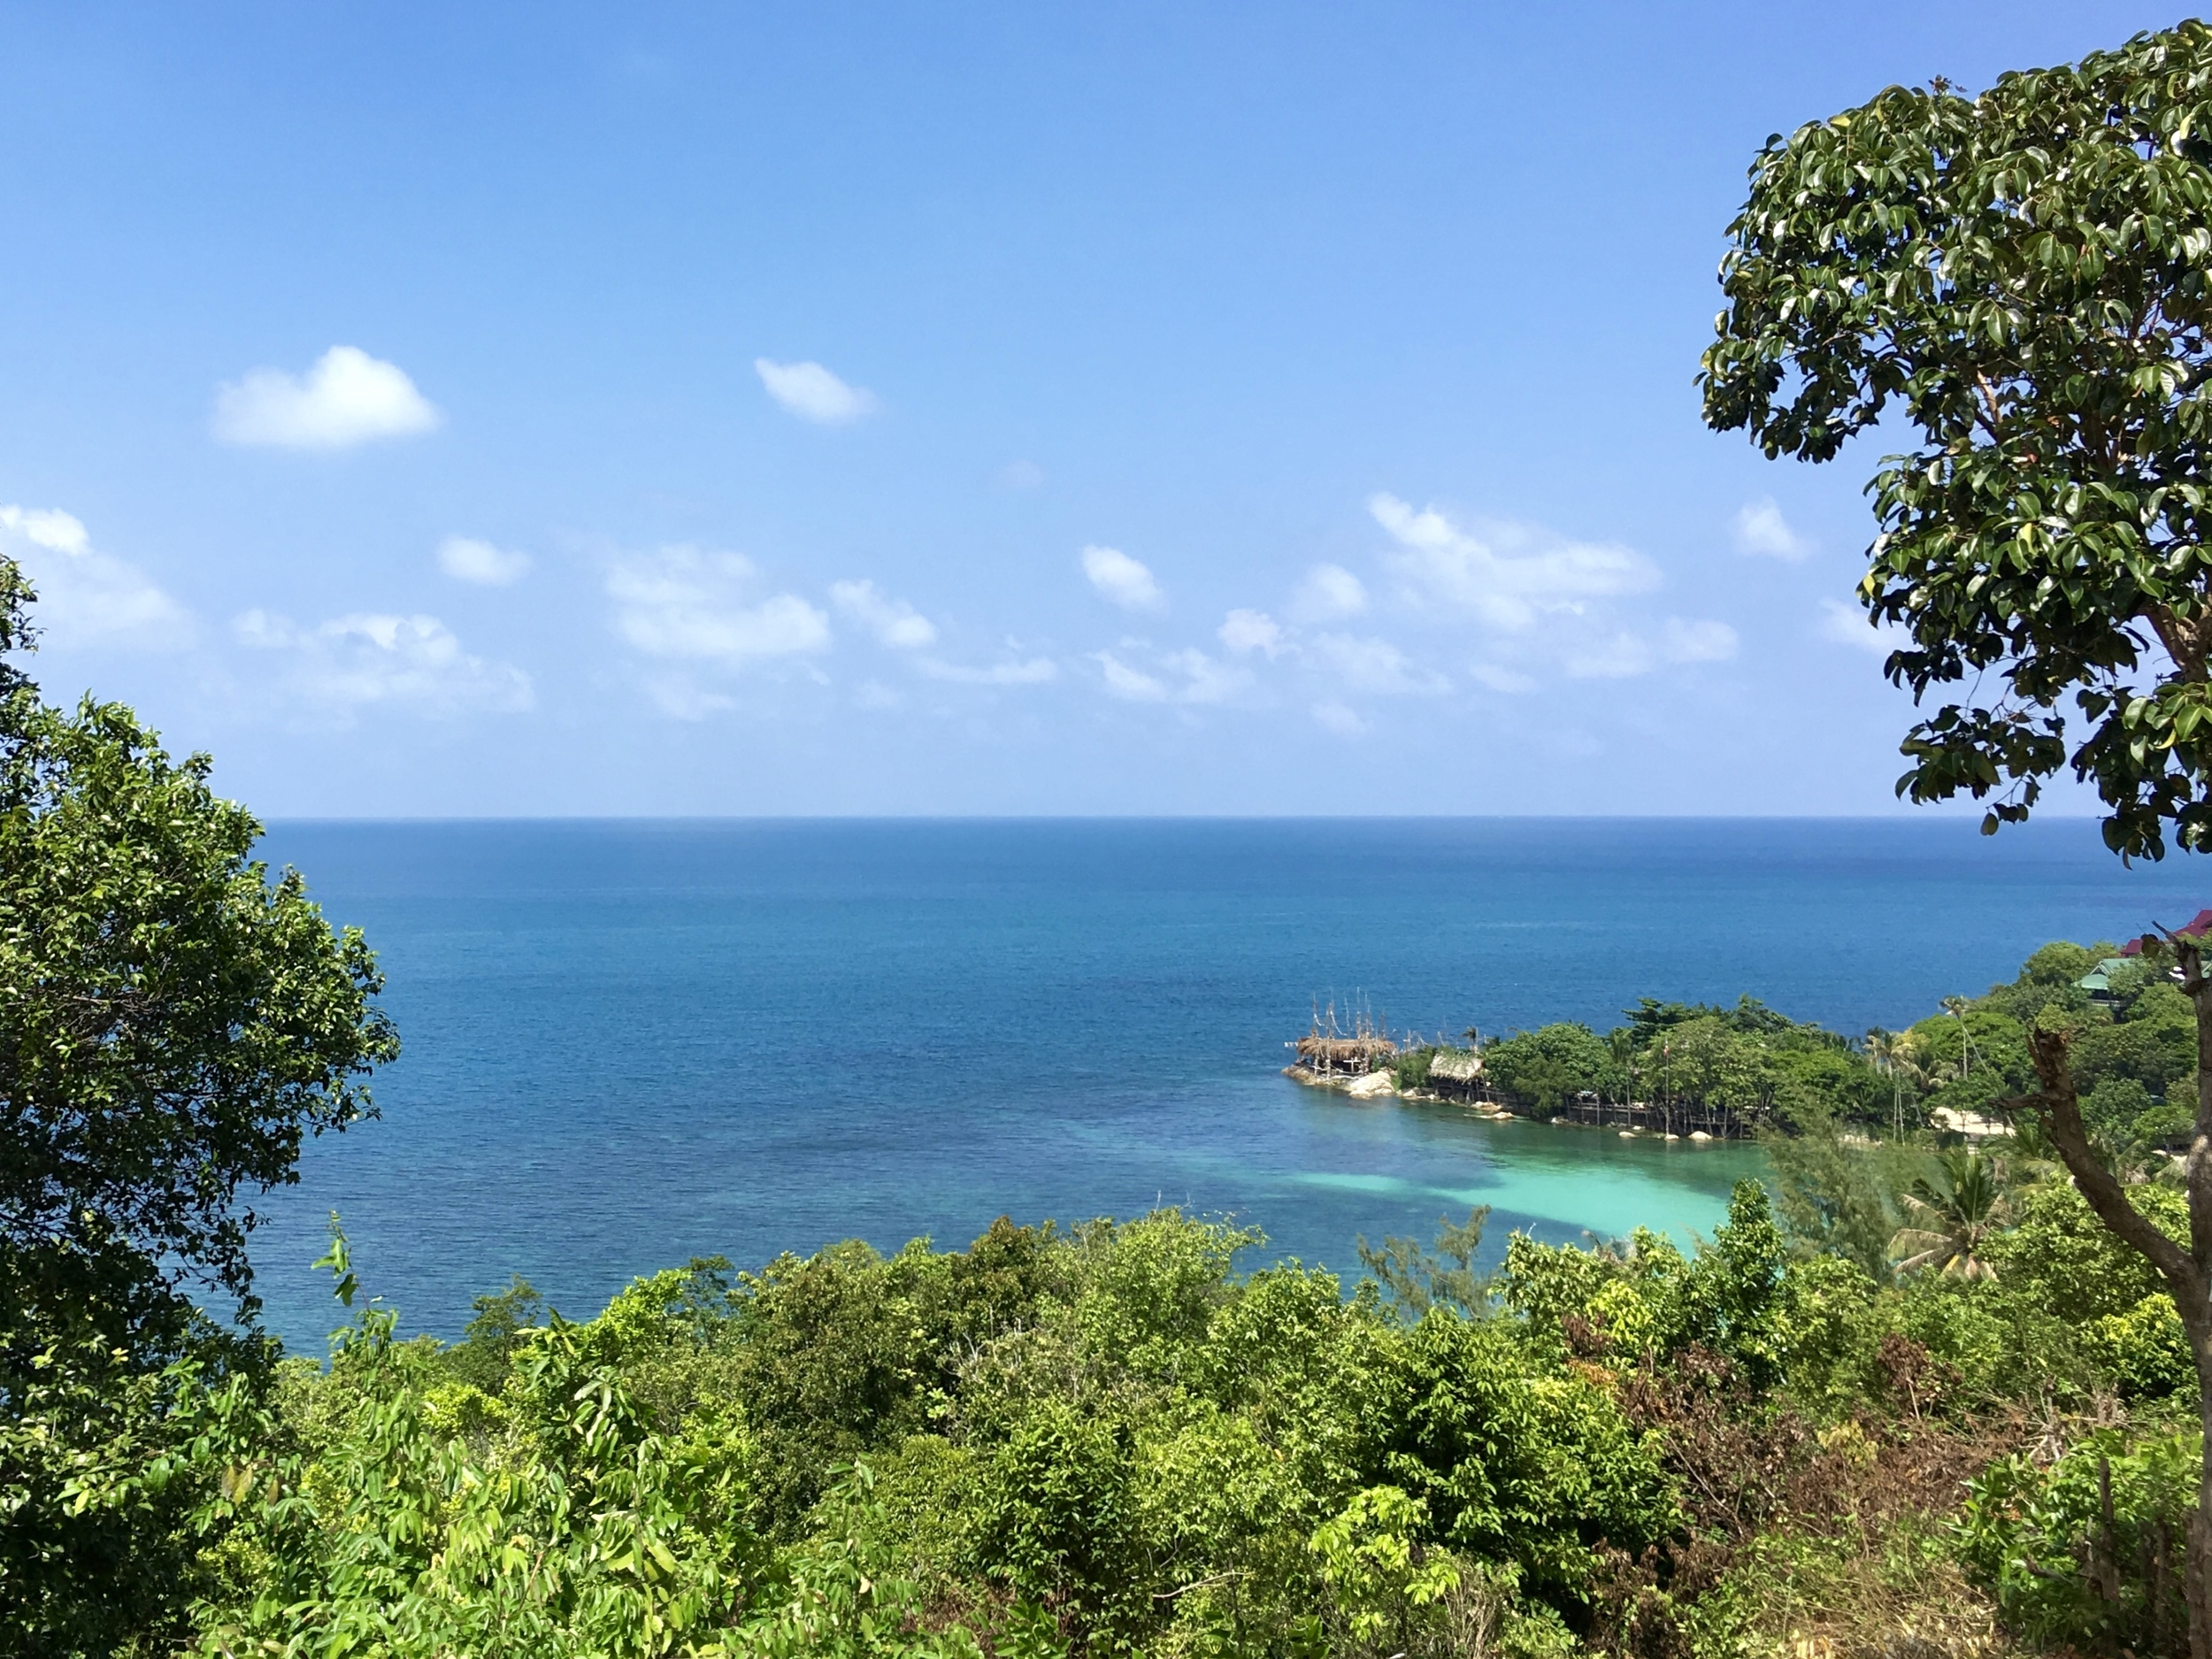 Stopping for a view atop one of Koh Pha Ngan's many steep hills.